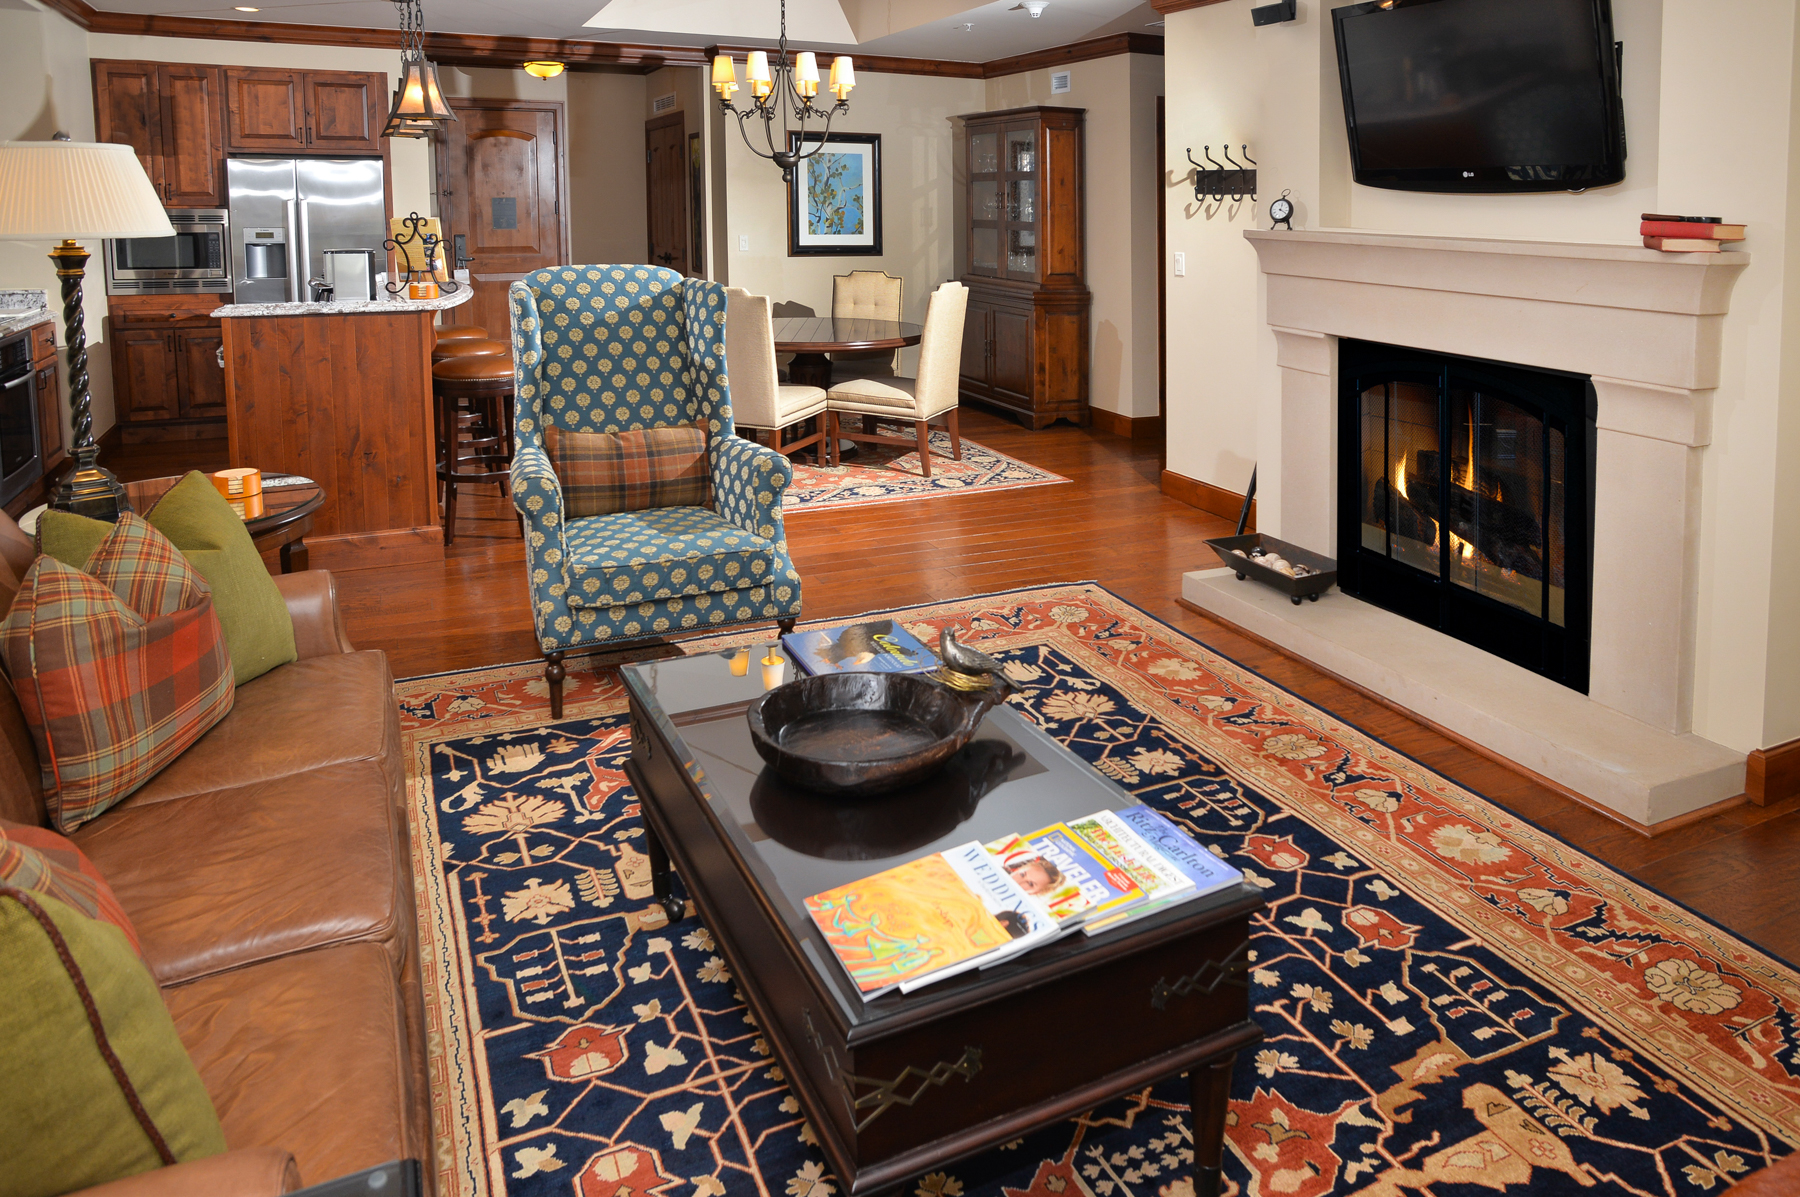 Fractional Ownership for Sale at Ritz-Carlton #418 728 W Lionshead Cir 418-06 Vail, Colorado, 81657 United States